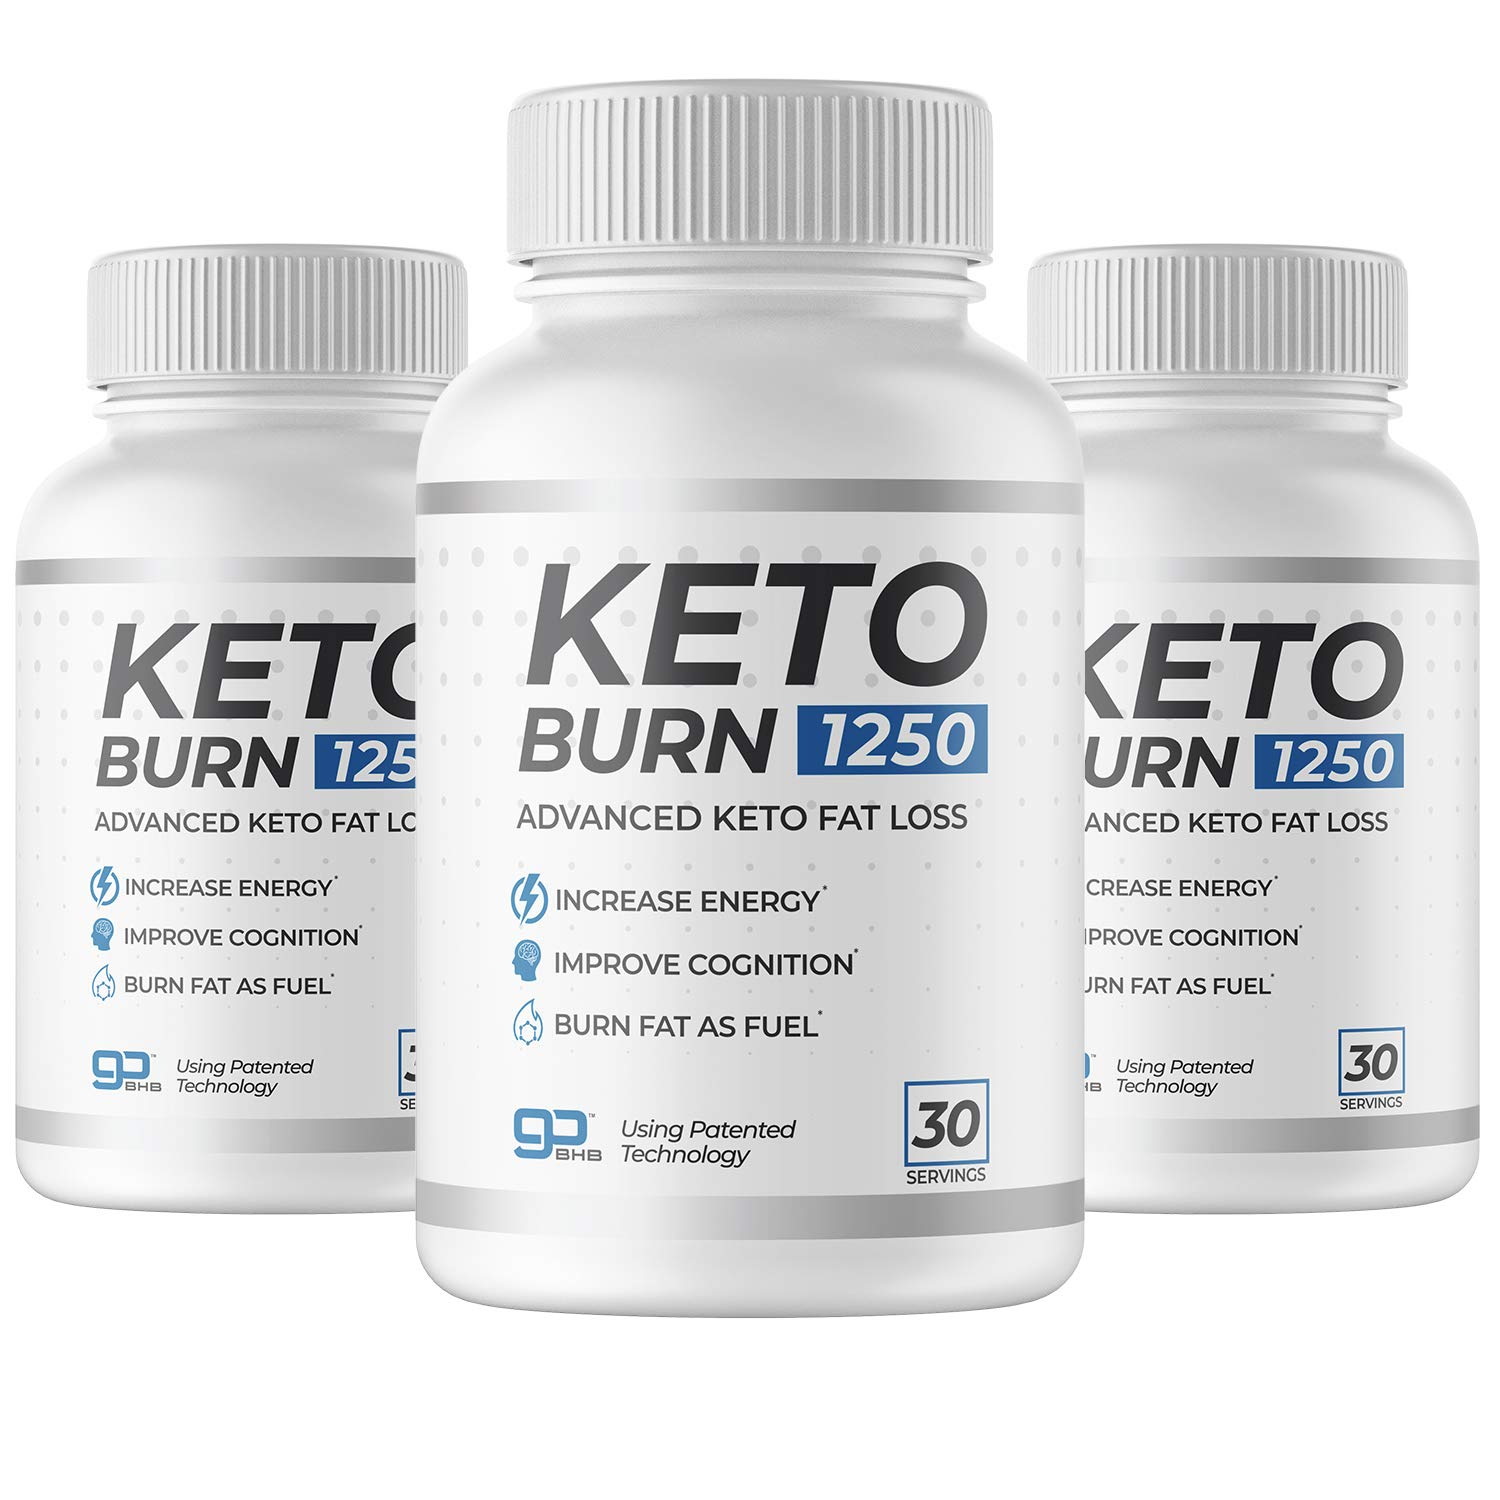 3 Bottles of KetoBurn 1250 (180 Capsules) - The ONLY Keto Pill That Uses Patented Fat Loss Technology!